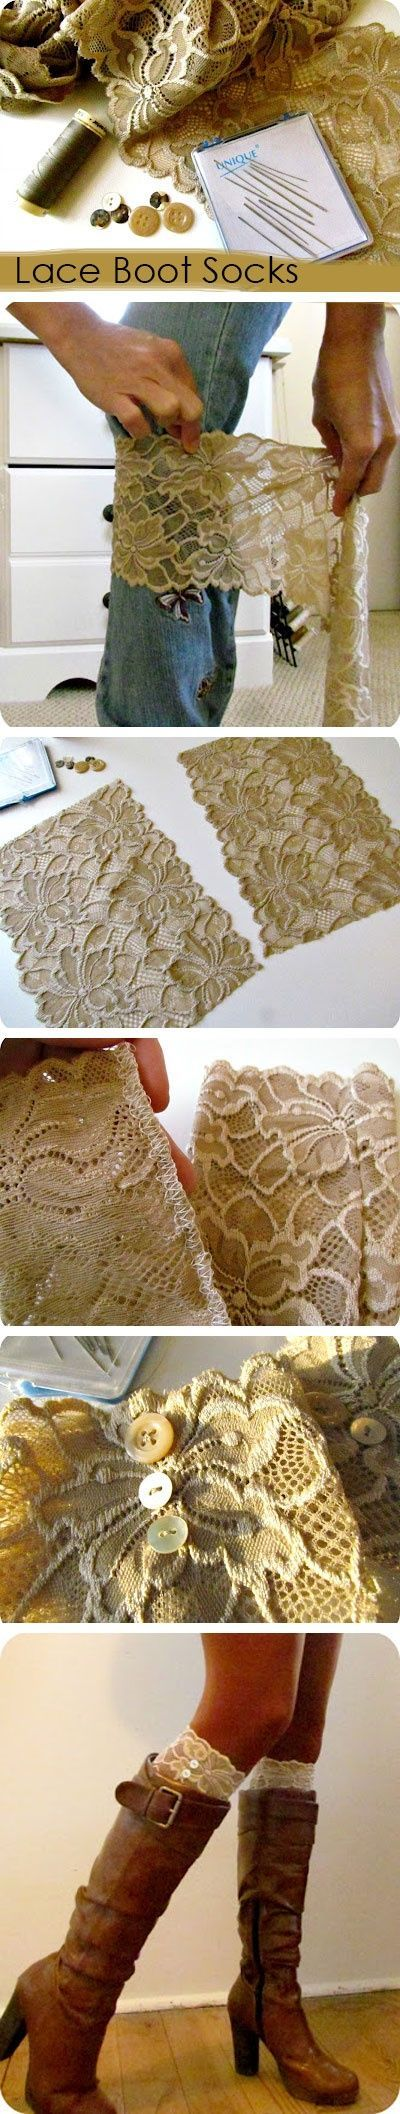 Lace boot socks…easy to make @ DIY Home Ideas